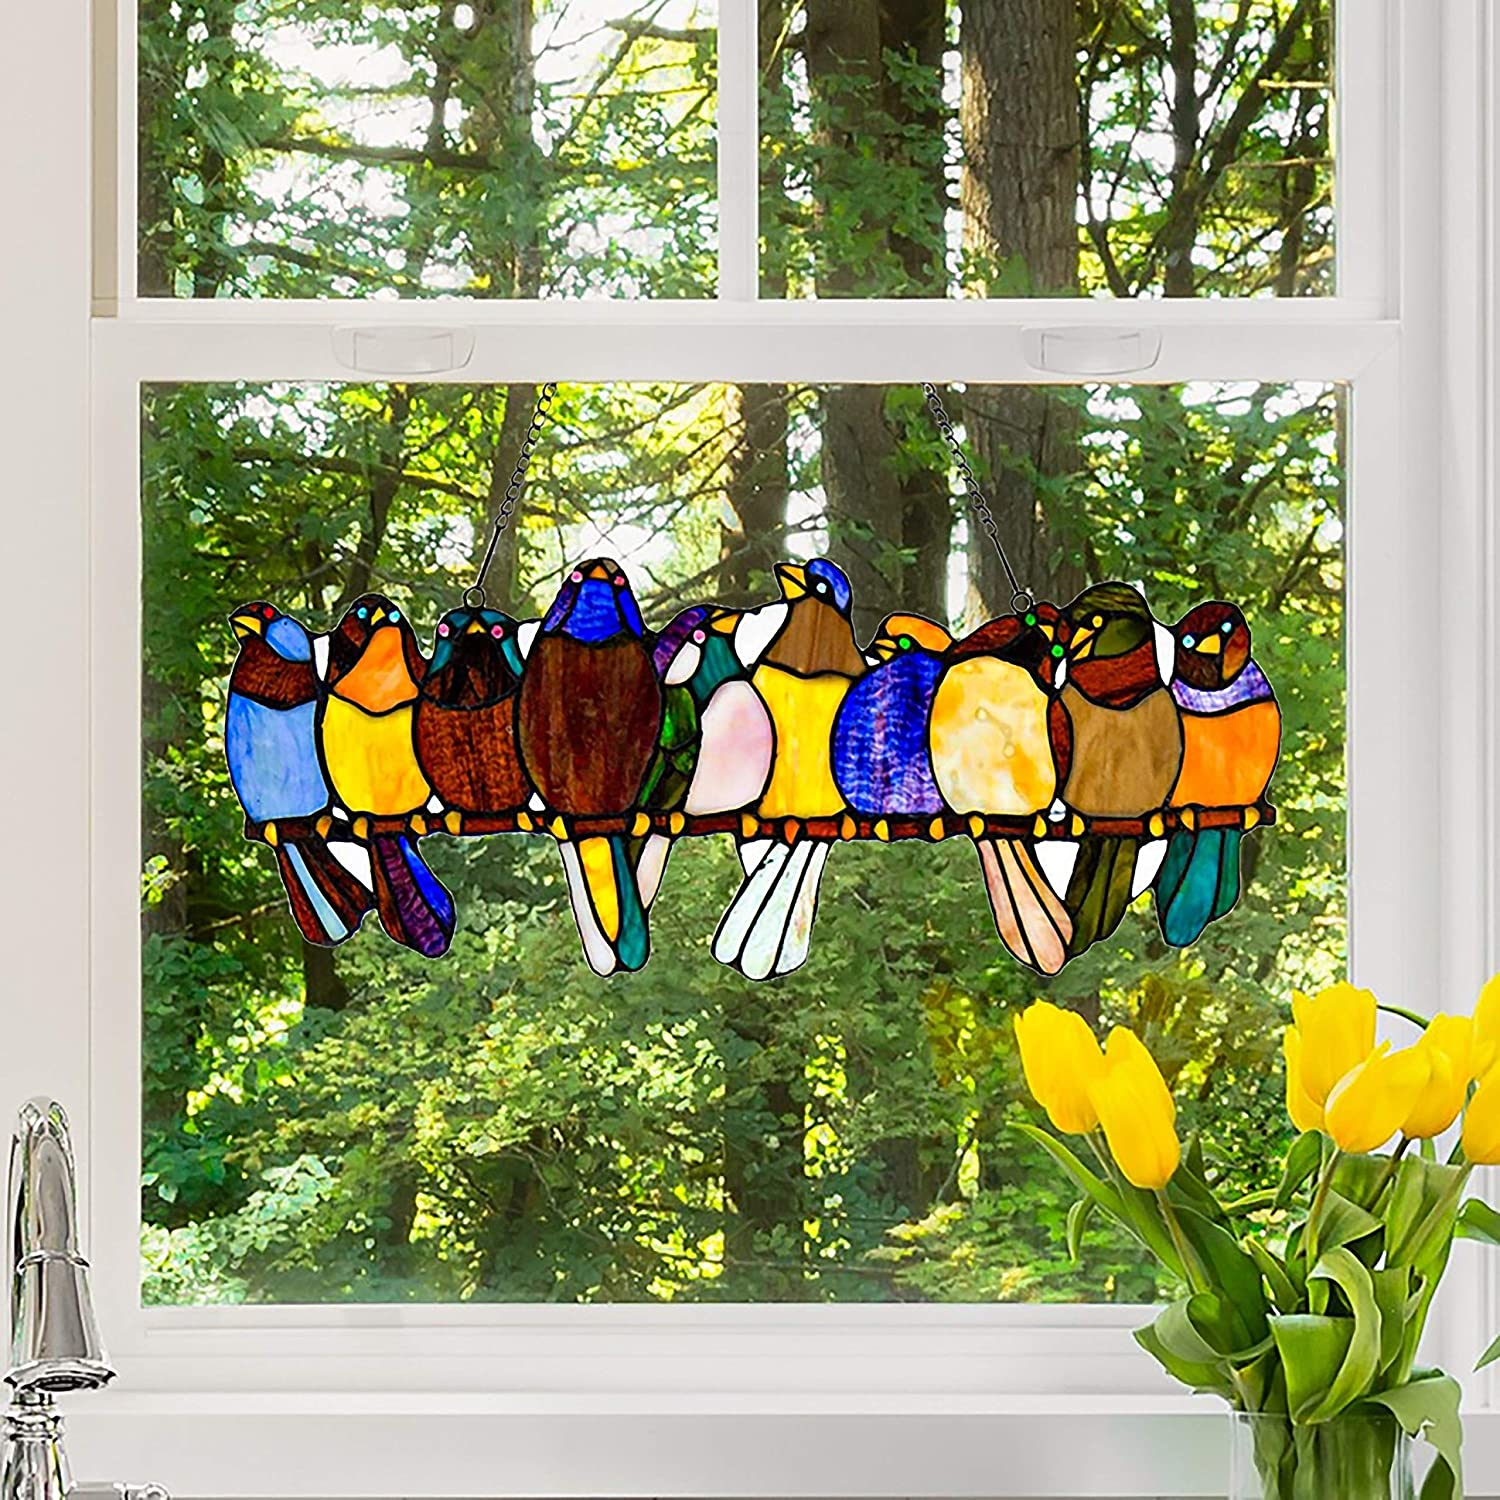 A Multicolor Spring Birds on a Wire High Stained Glass Suncatcher Window Panel Bird Series Hanging Ornaments Pendant lovely birds Suncatchers Home Decoration Outdoor D/écor Gifts for Bird Lover